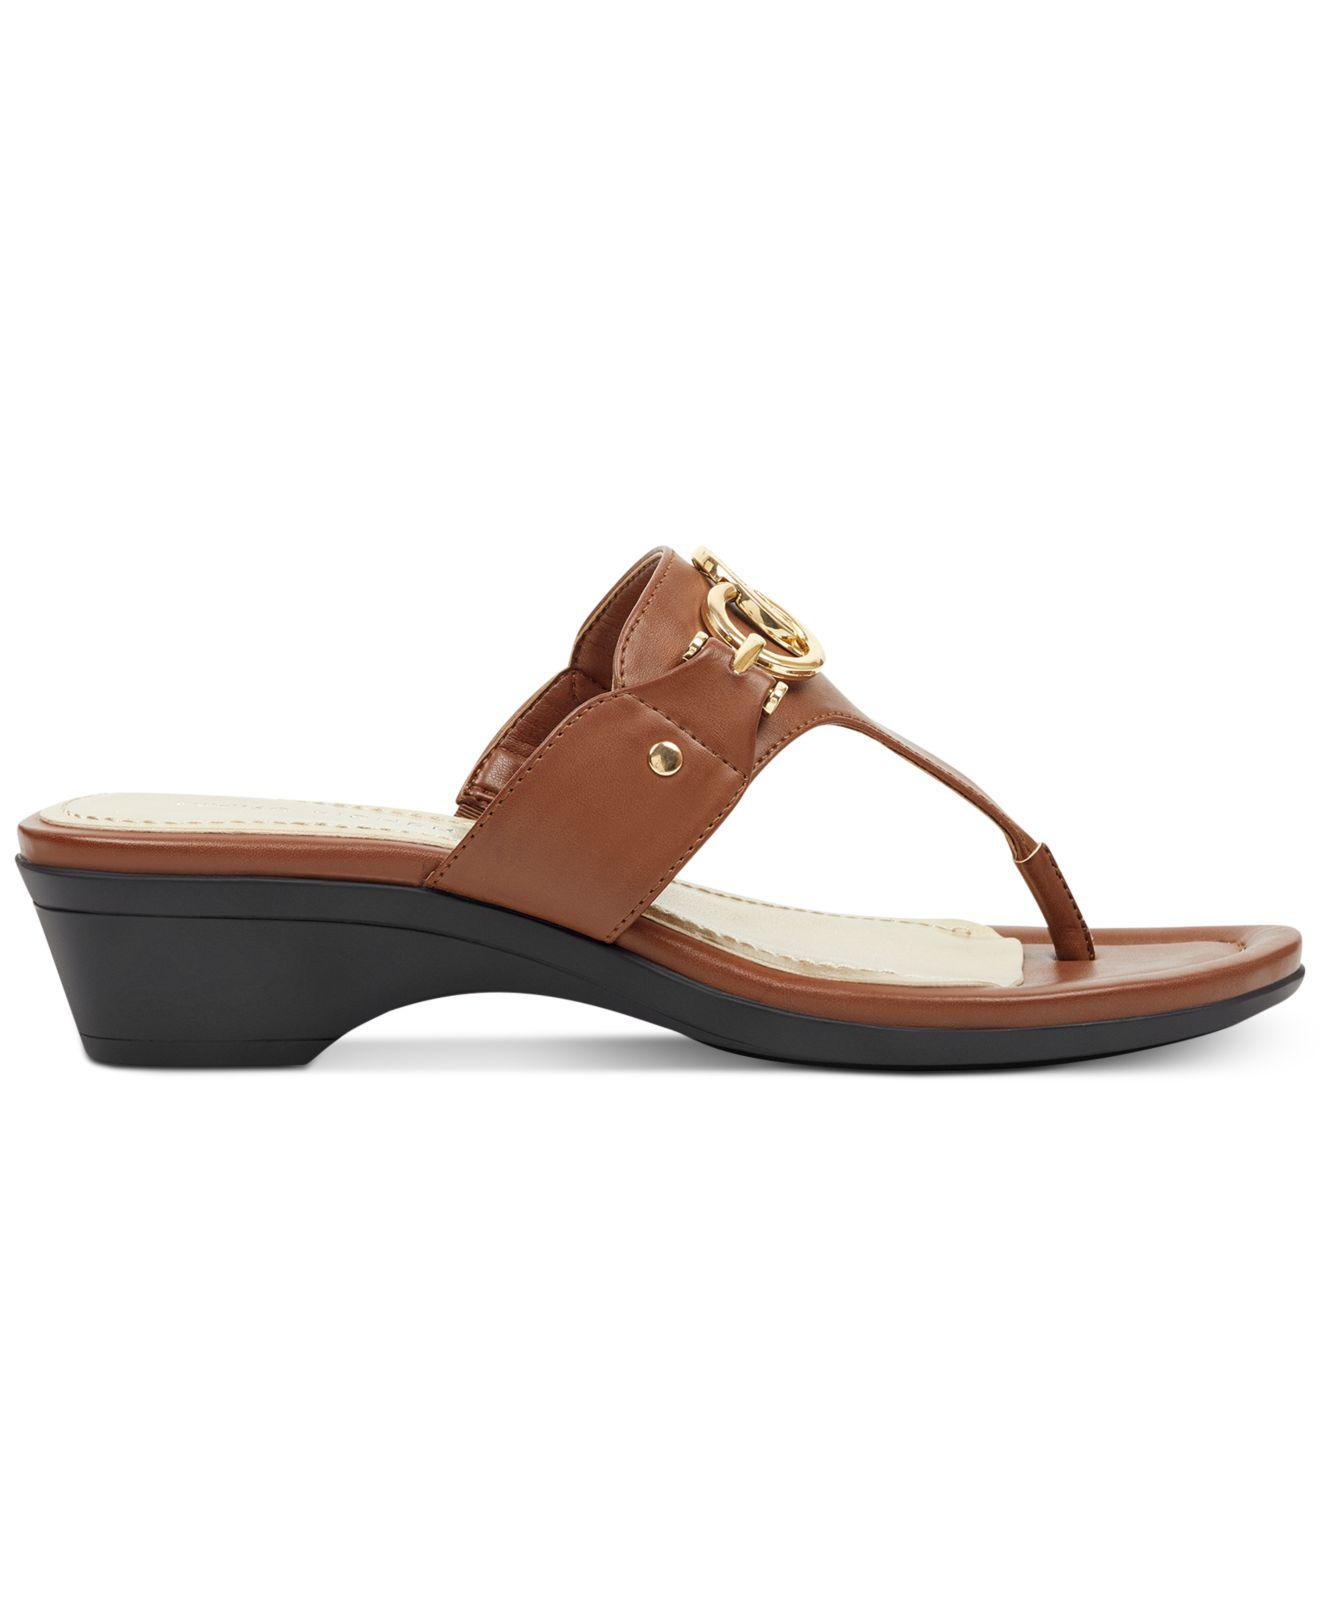 bdfc8df937d876 Lyst - Marc Fisher Ariana Thong Sandals in Brown